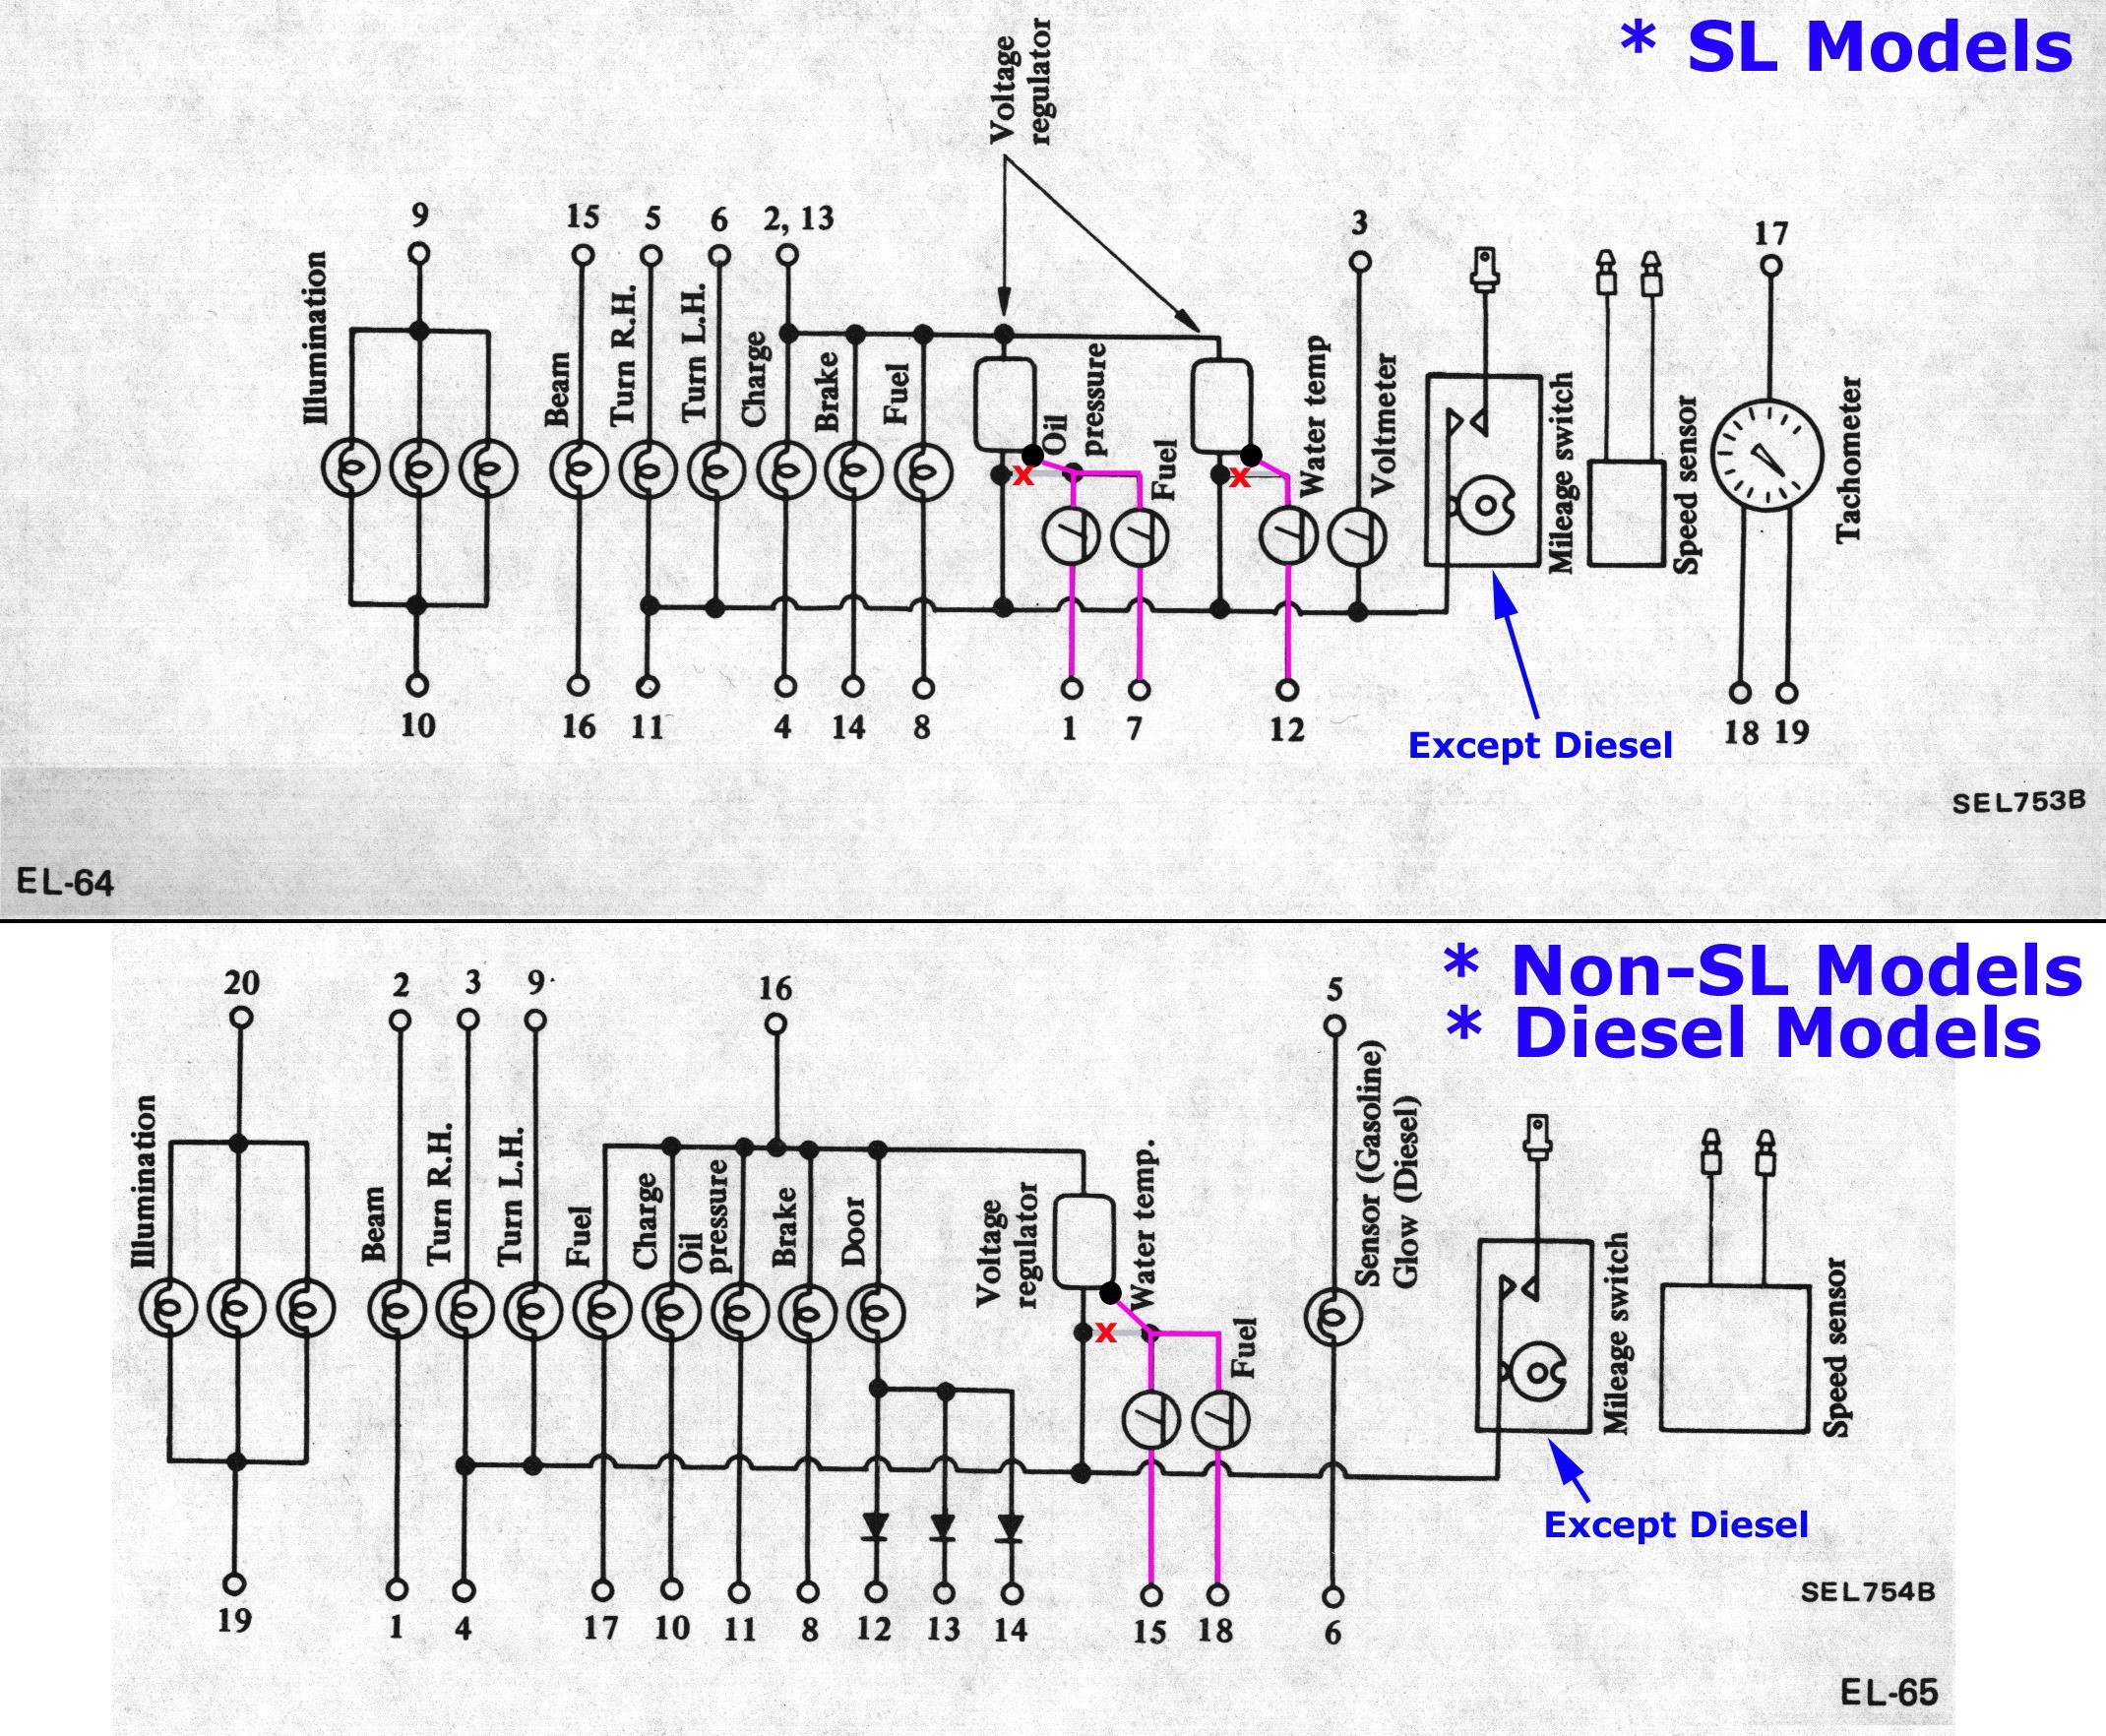 2004 Nissan Maxima Engine Diagram Index Of Nissan Maxima Fsm 1983 Of 2004 Nissan Maxima Engine Diagram